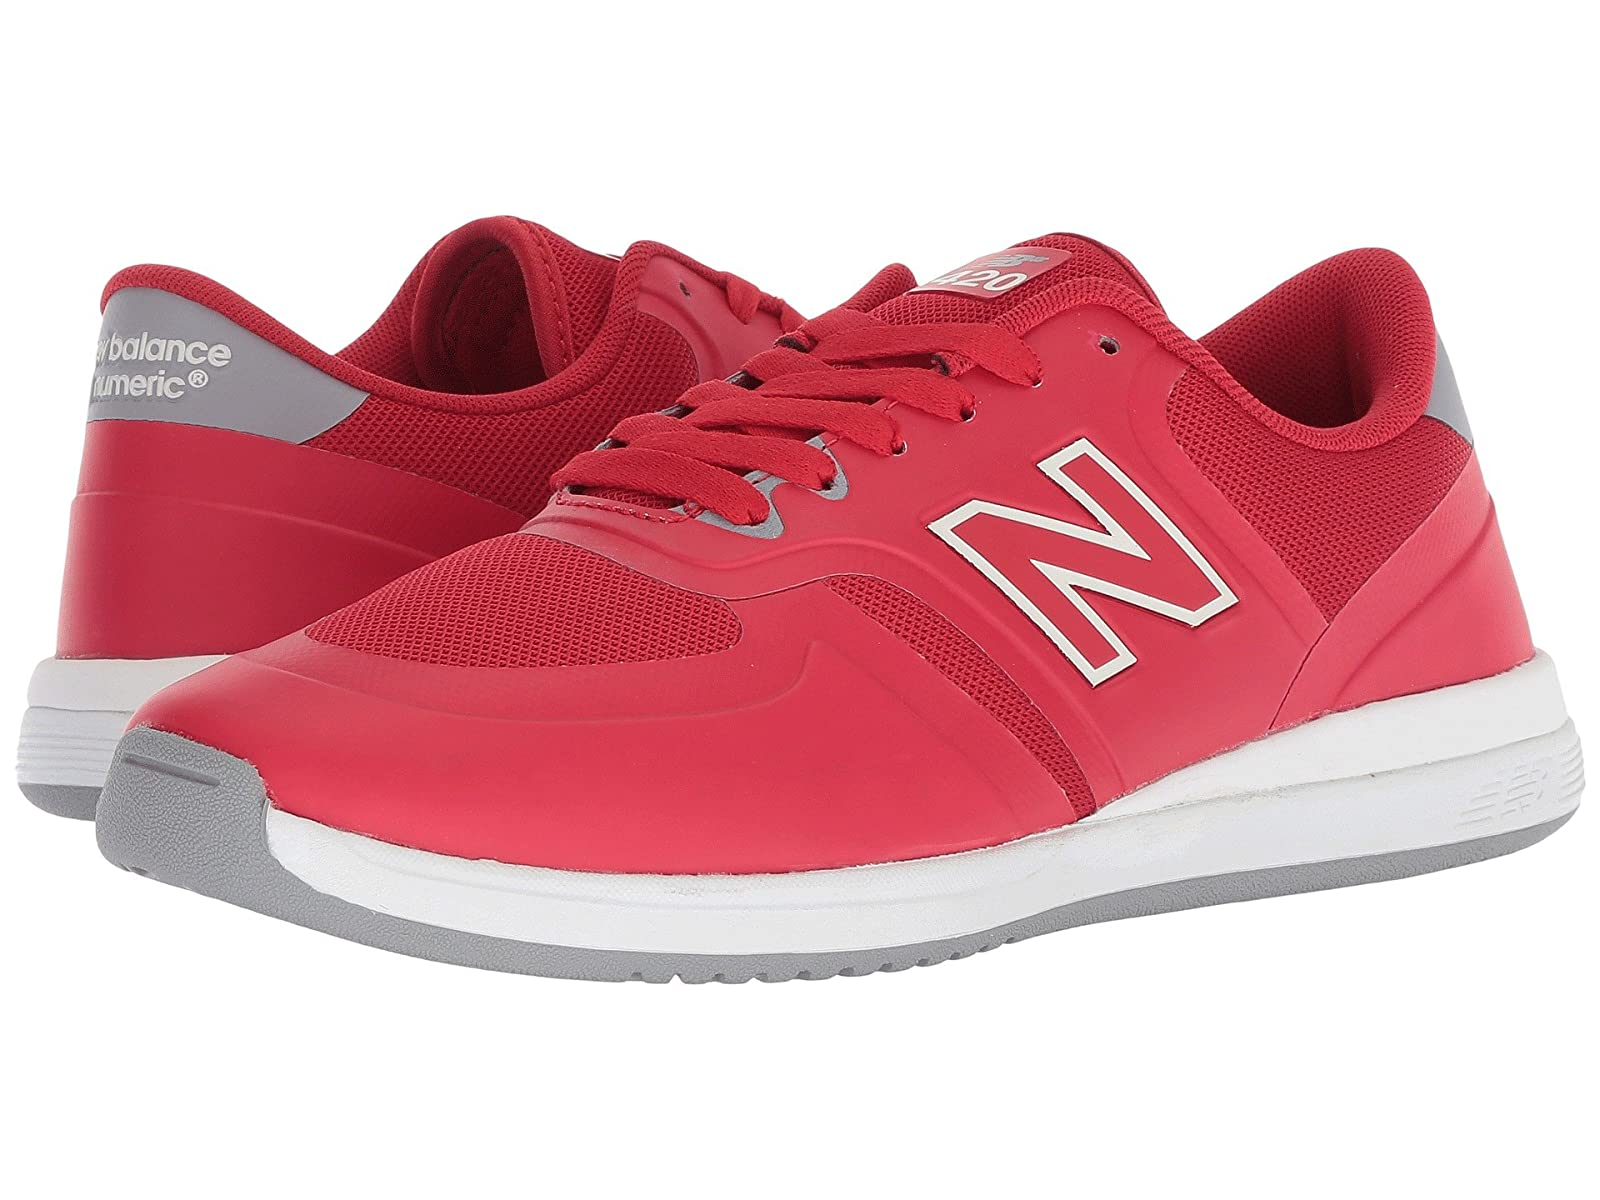 New Balance Numeric 420Atmospheric grades have affordable shoes